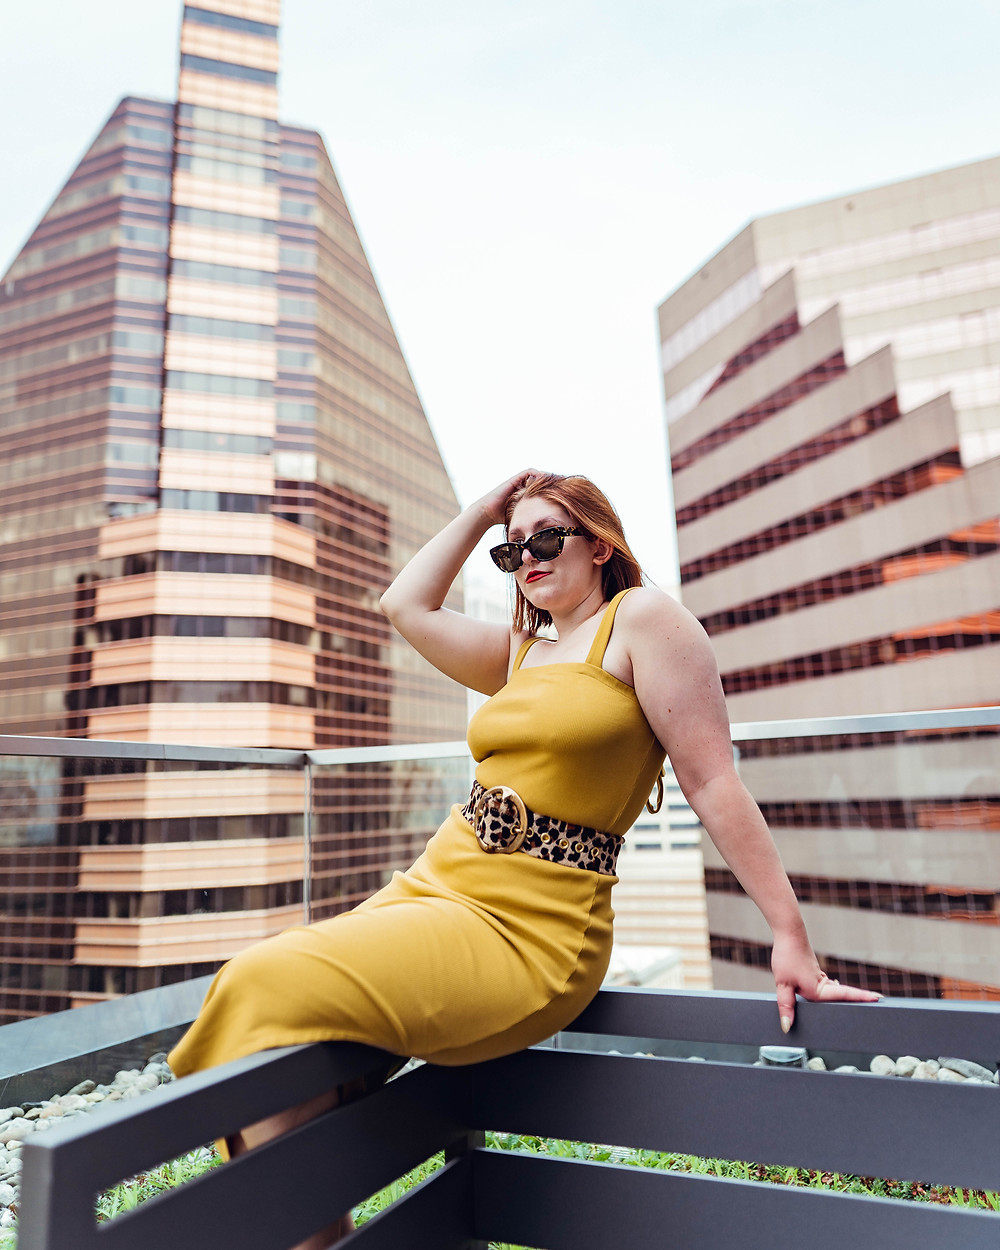 Taylor sits on balcony with city views of Baltimore City wearing wearing a yellow dress.